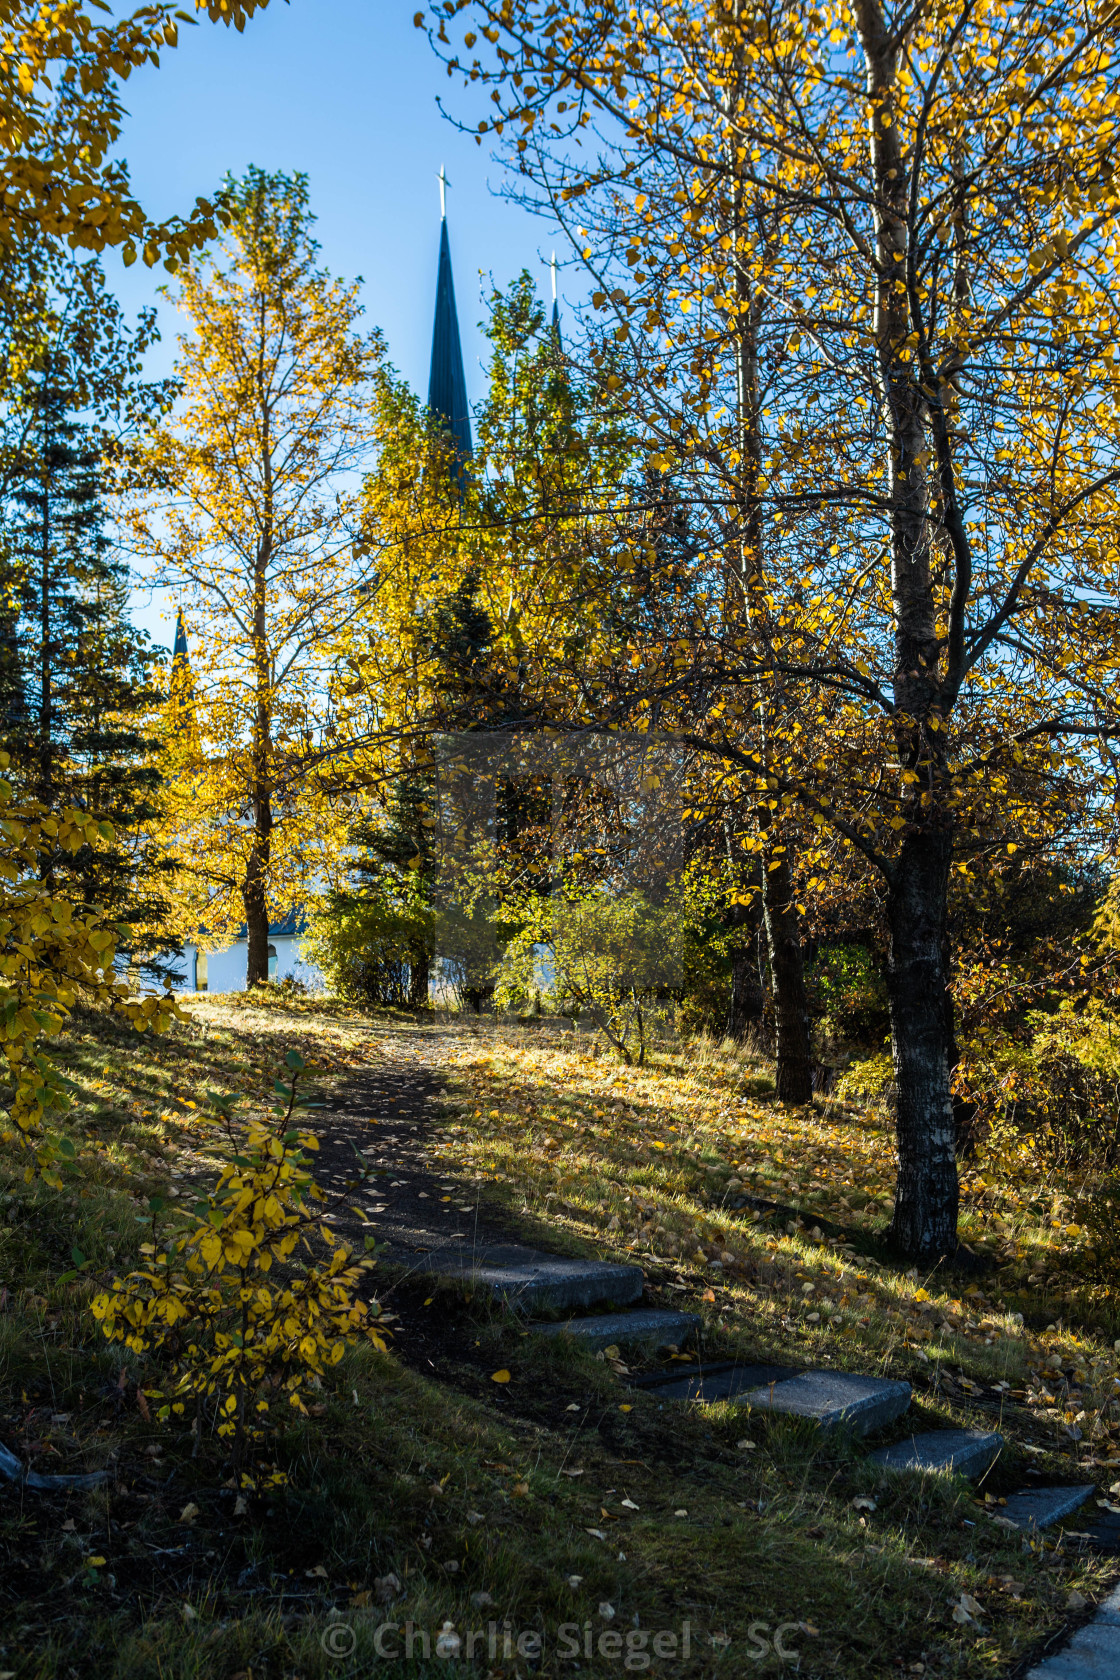 """Steps Leading up to Hateigskirkja Church"" stock image"